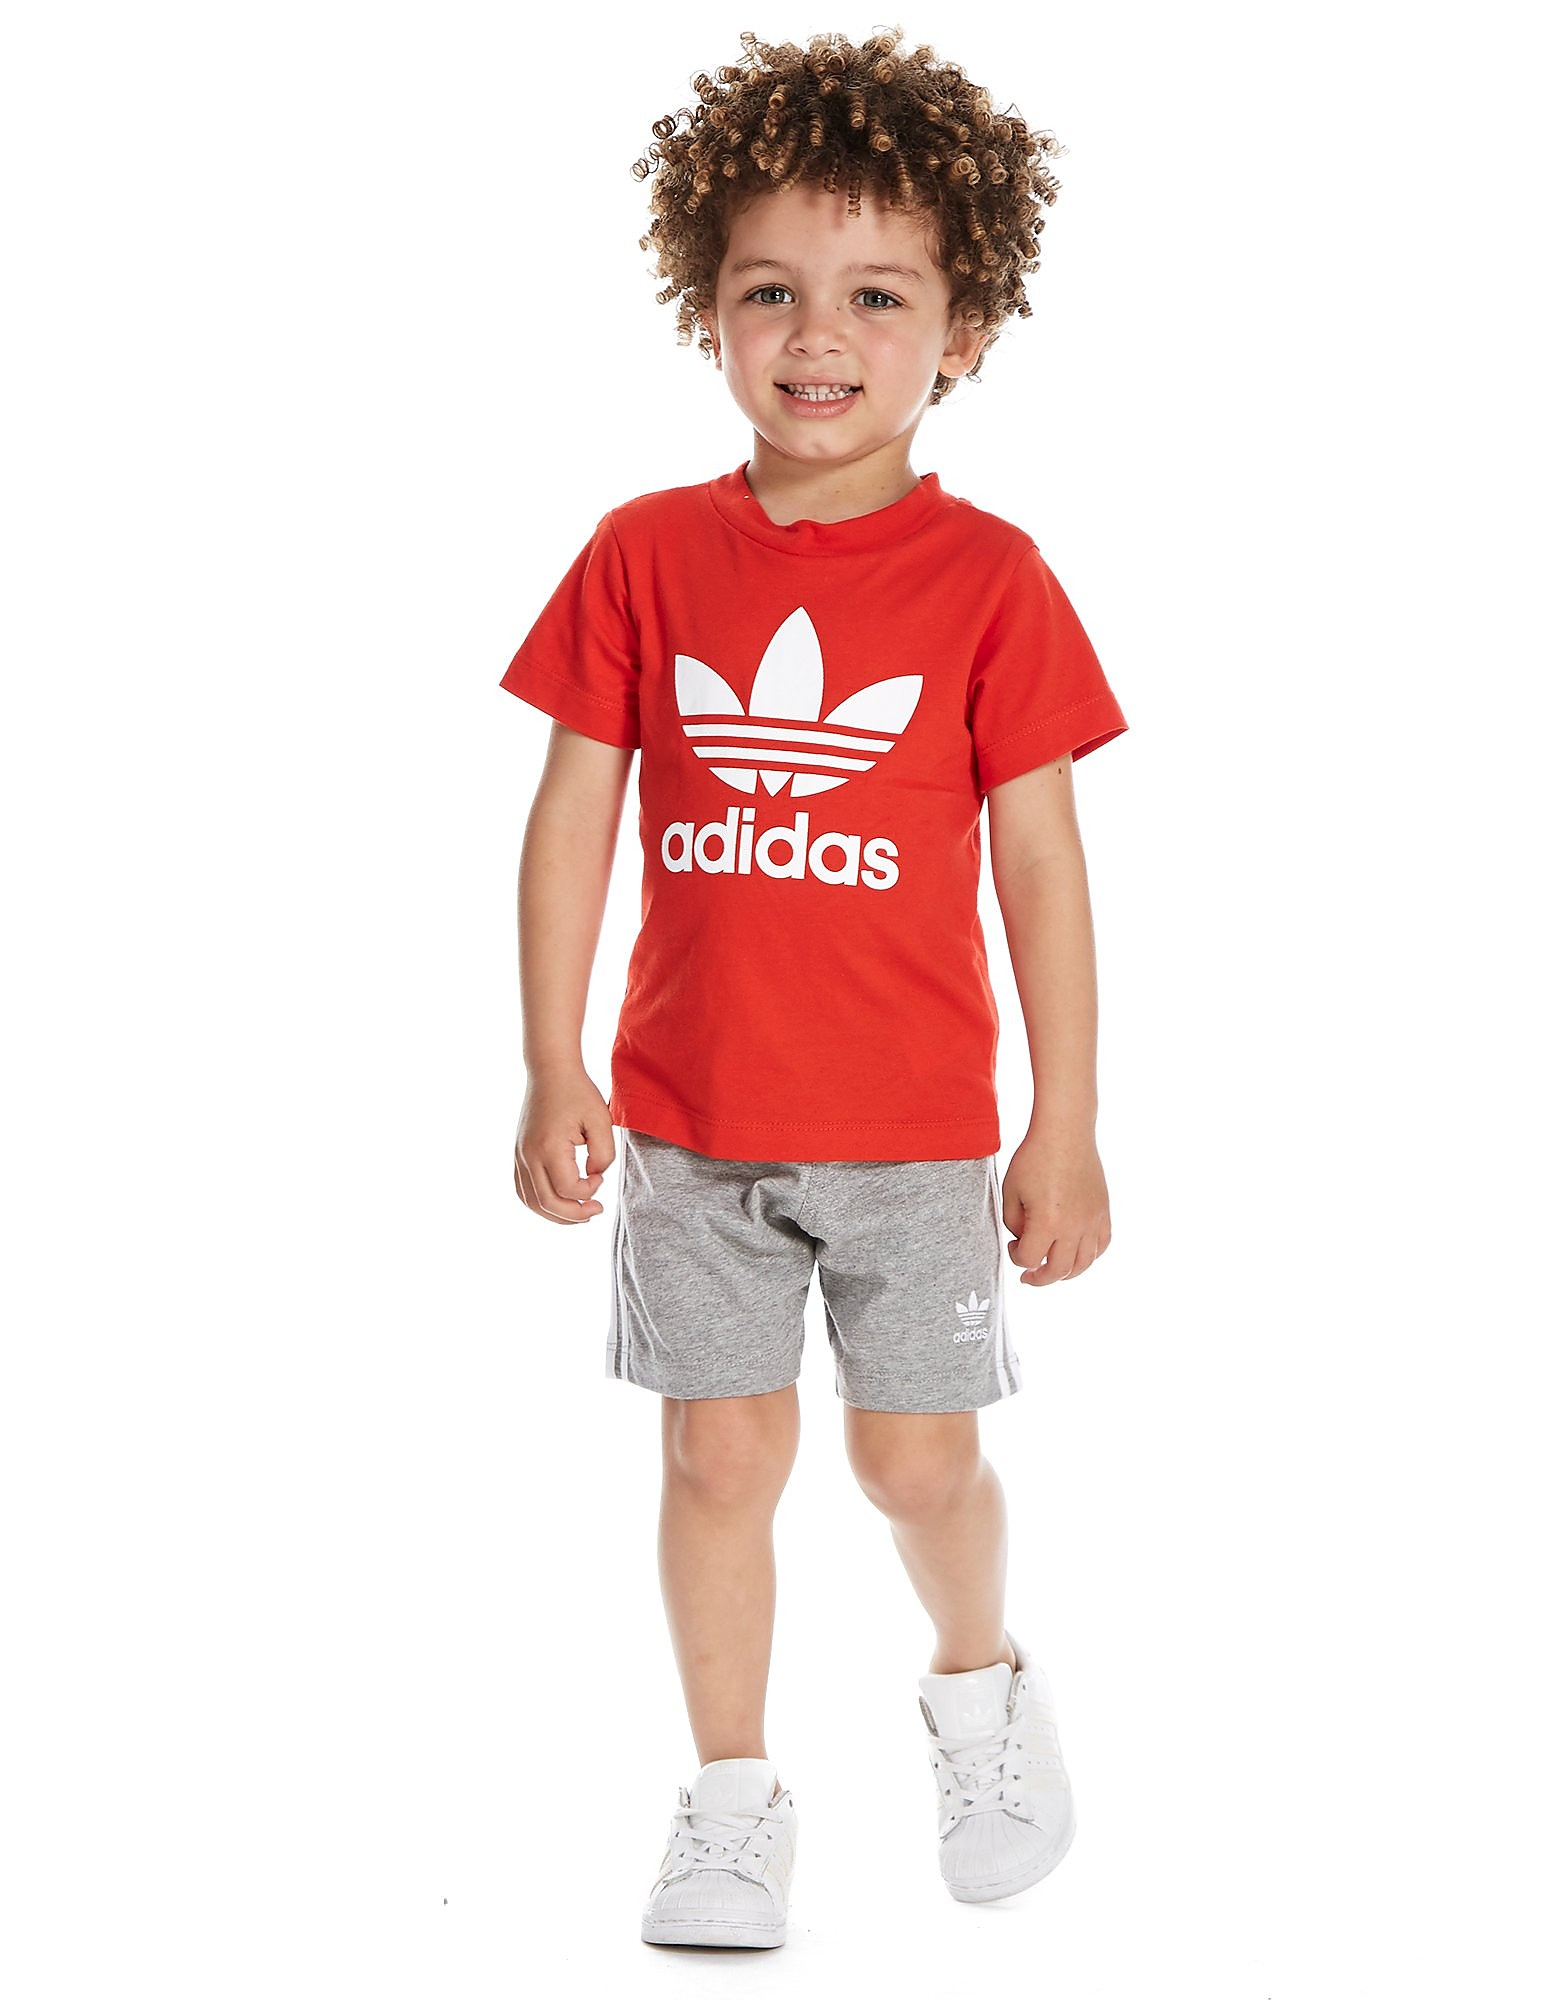 adidas Originals Trefoil T-Shirt and Shorts Set Infants